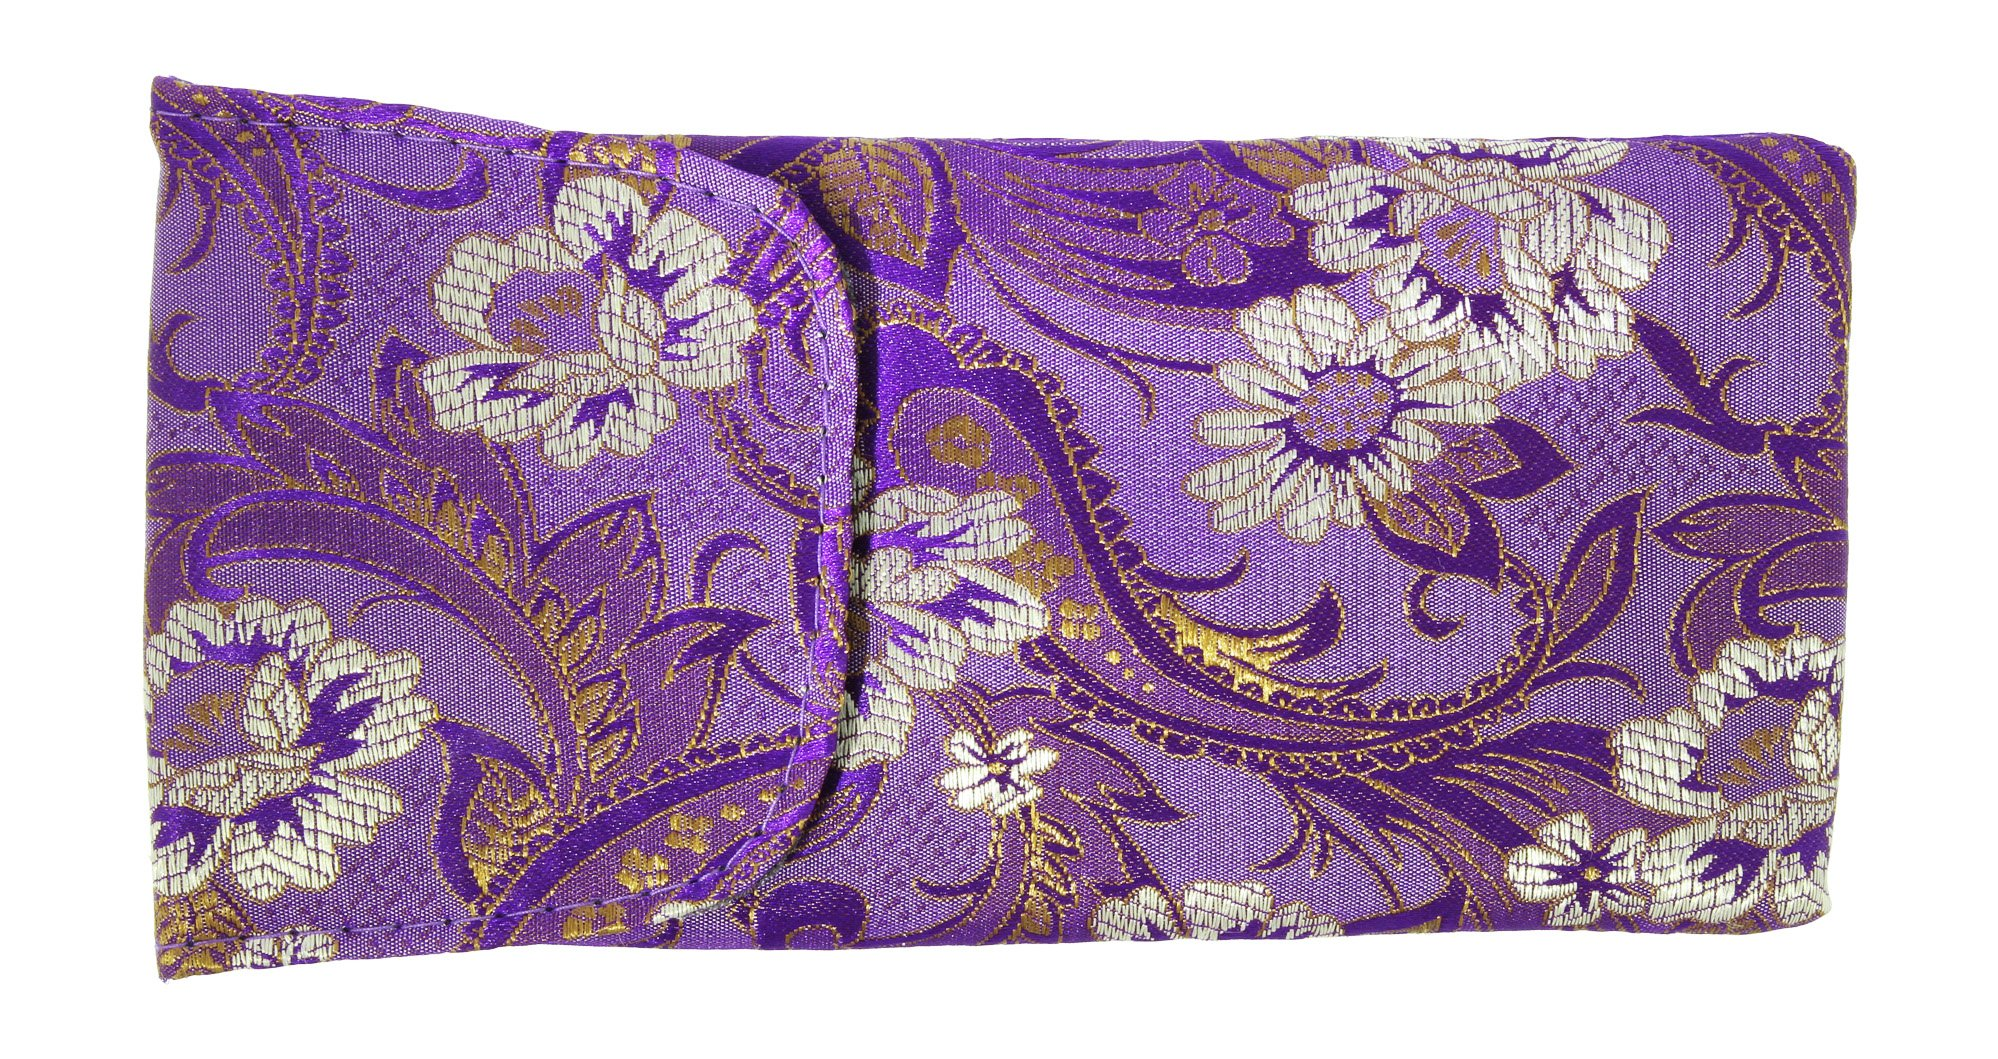 3 Pack Floral Eyeglass Case Top Closure, Slip In Eyeglass Case Soft Fits Medium To Large Glasses, Women by Ron's Optical (Image #4)